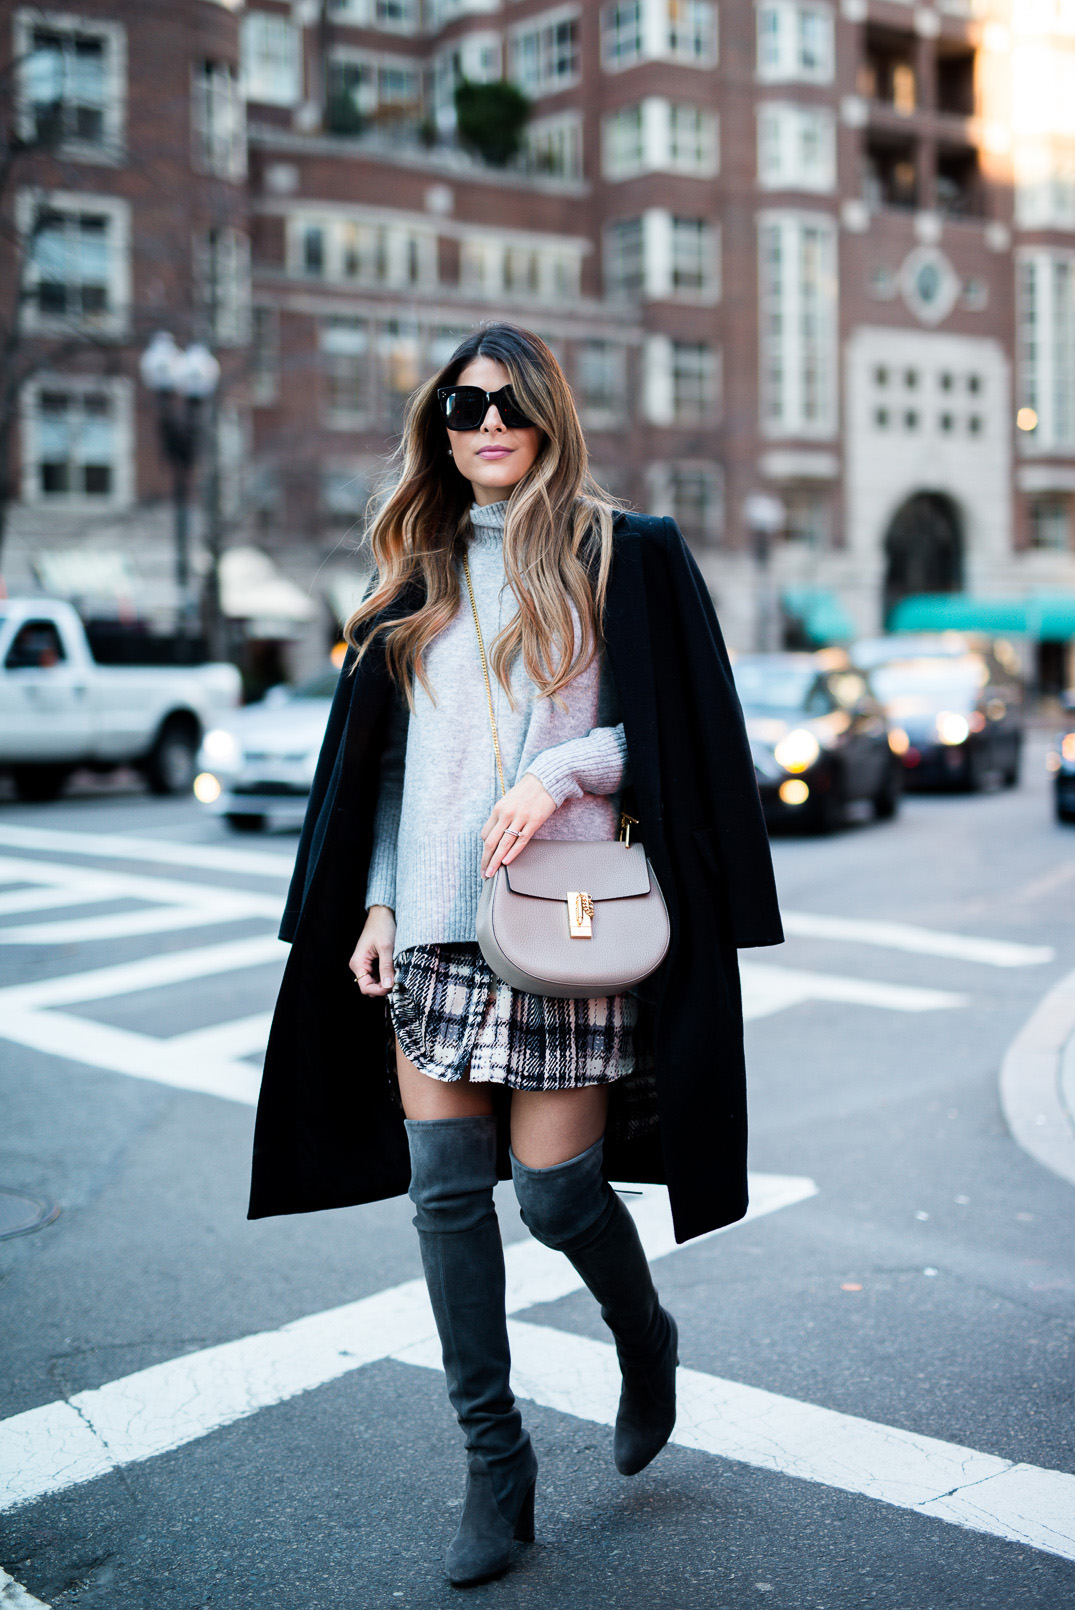 25-cool-looks-winter